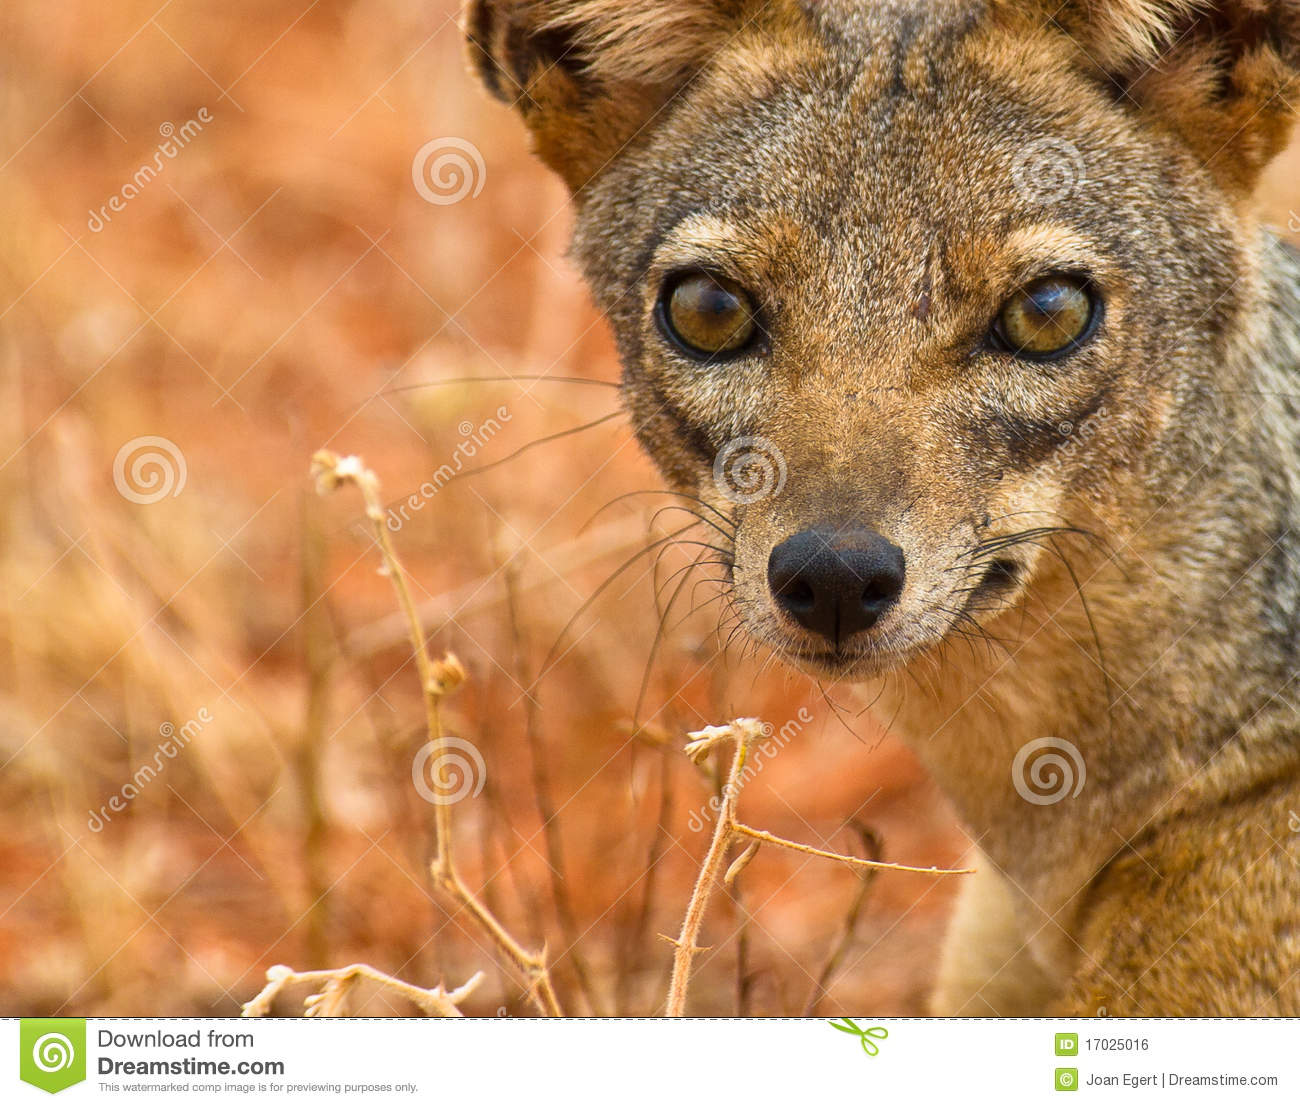 The Eyes Of The Black Backed Jackal Royalty Free Stock